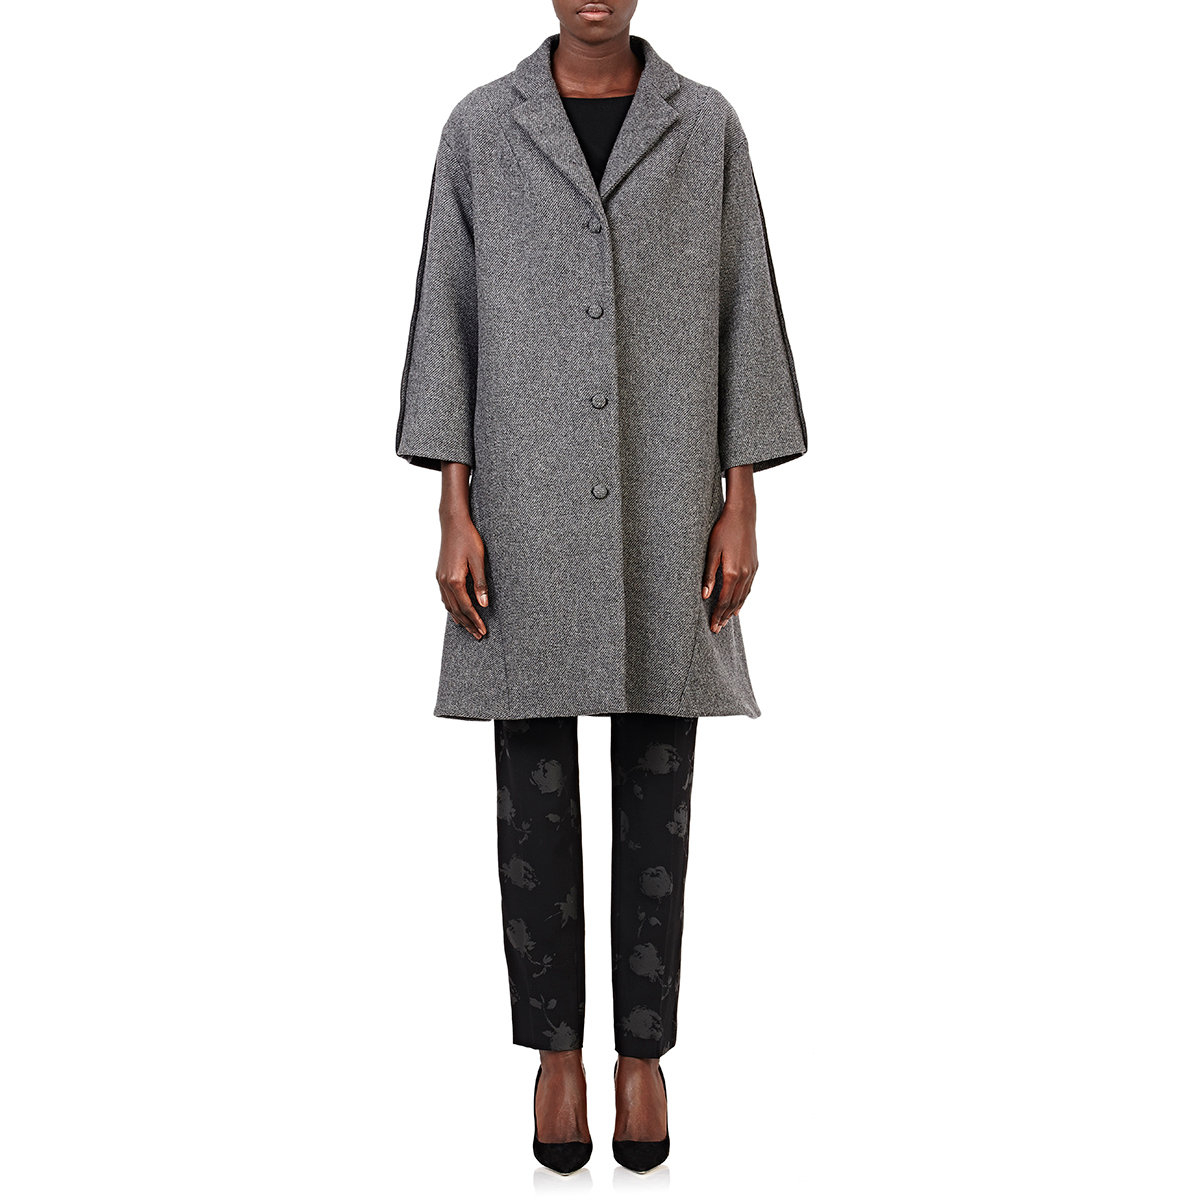 Nina ricci Tweed Swing Coat in Gray | Lyst